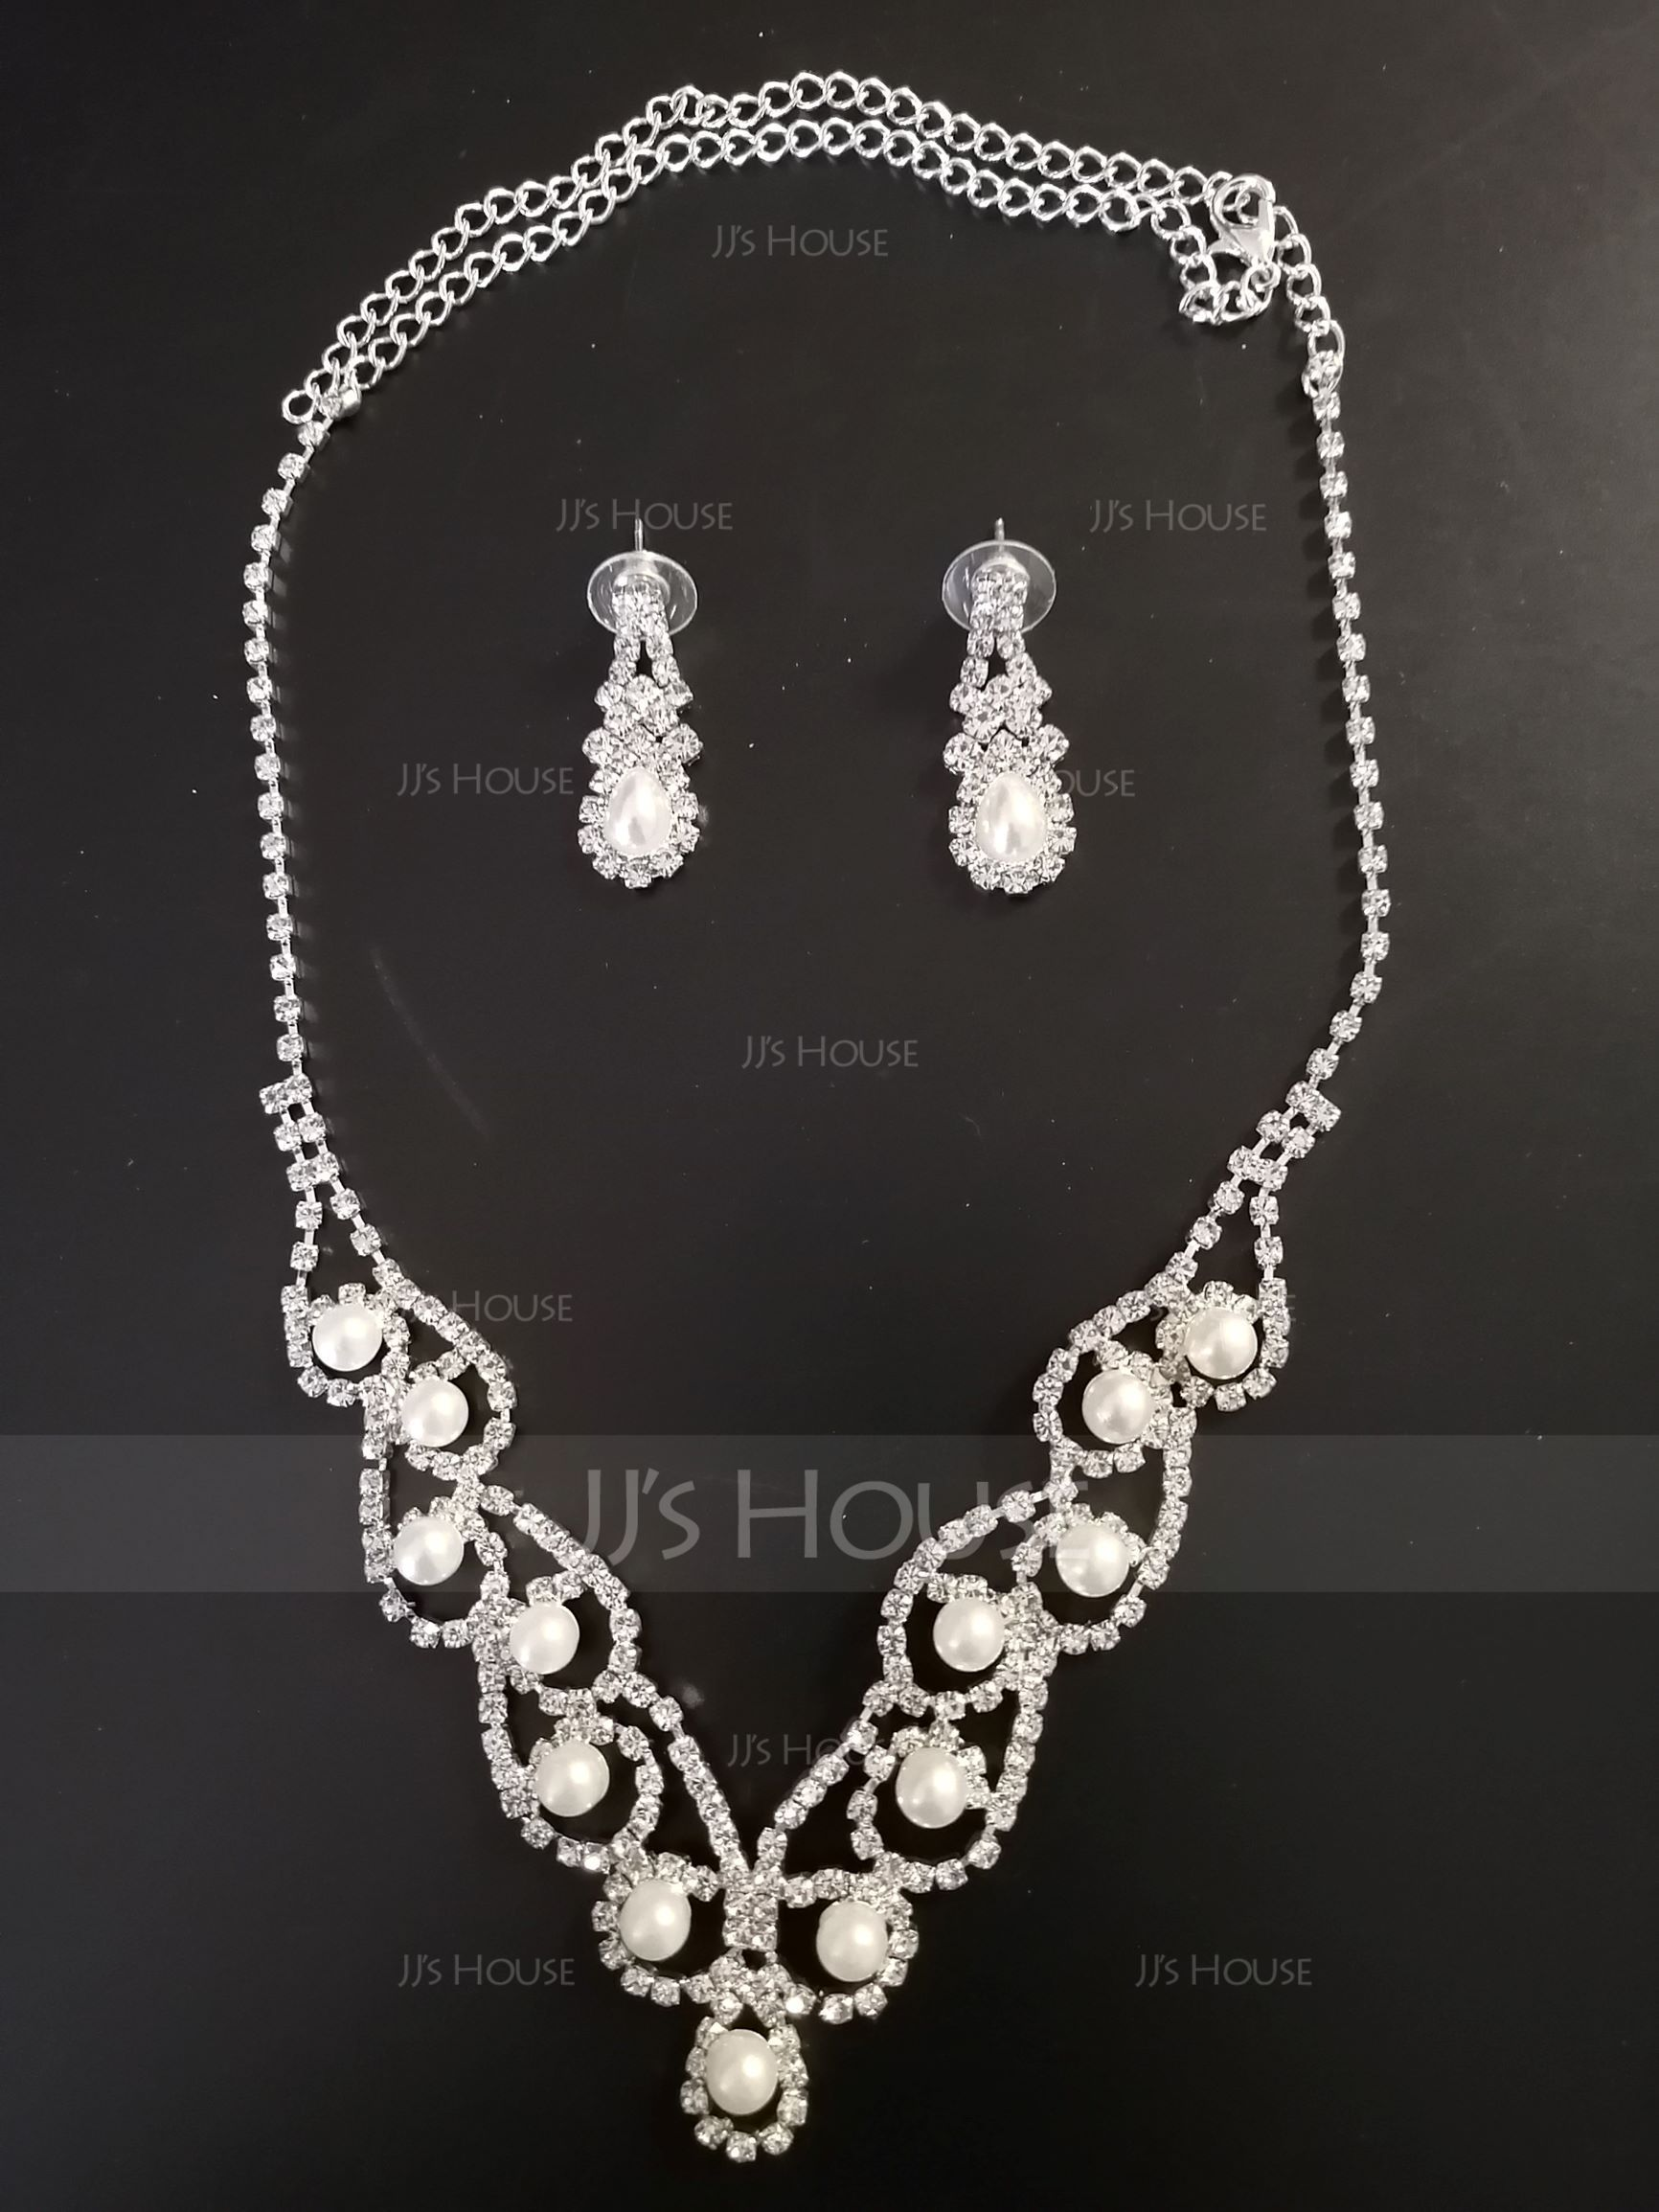 Vintage Alloy/Copper With Rhinestone/Imitation Pearls Ladies' Jewelry Sets (011171322)